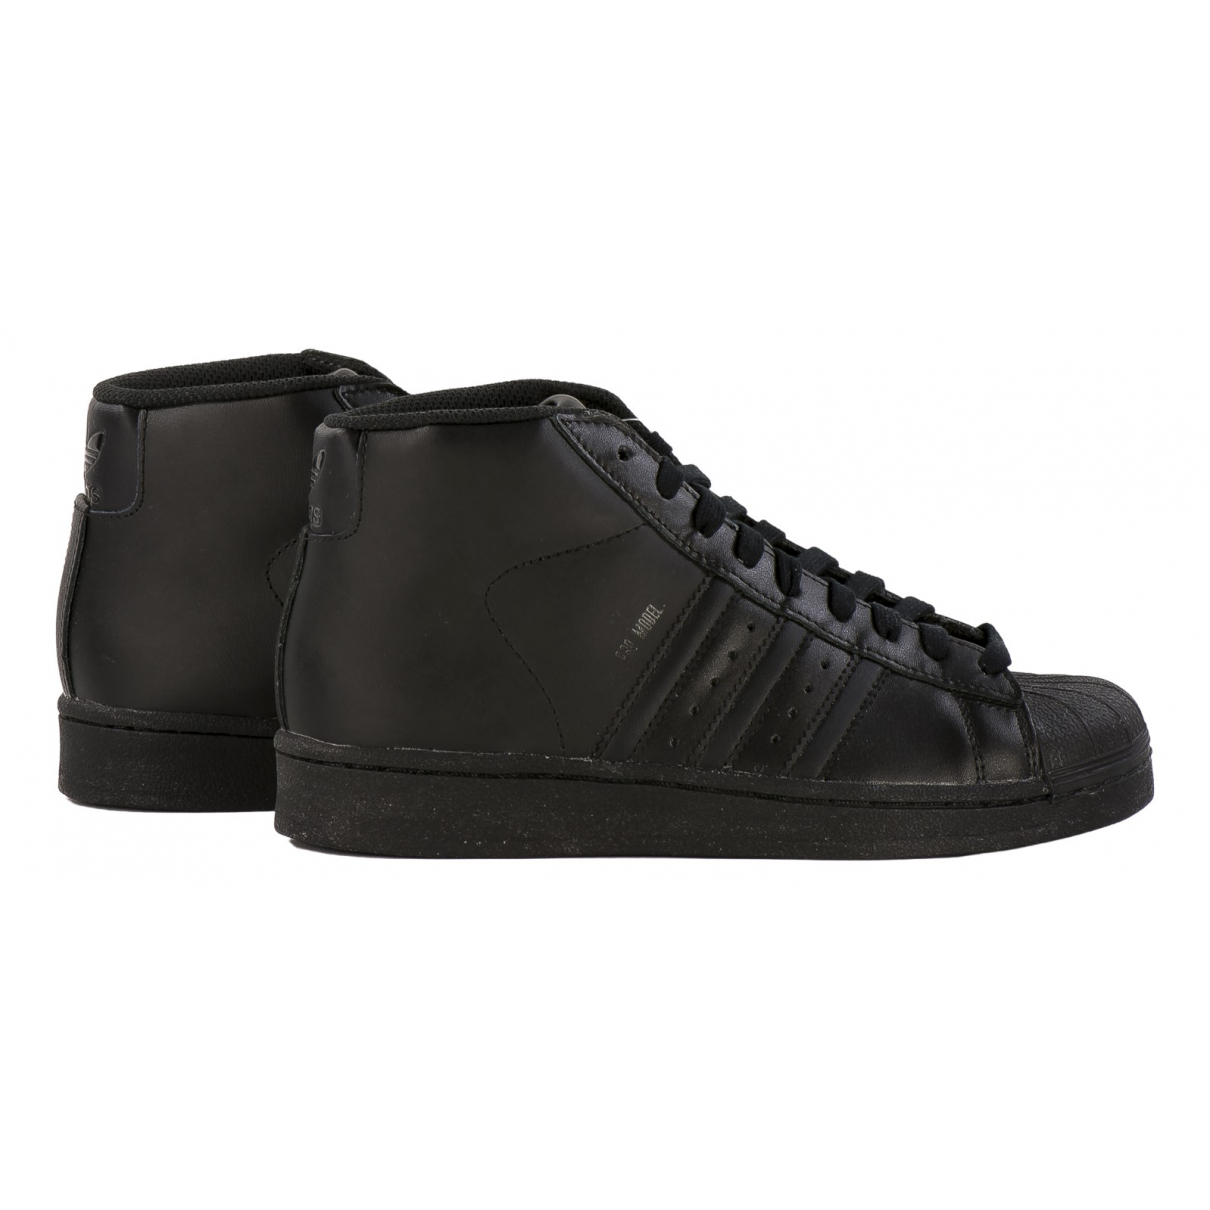 Adidas Superstar Black Leather Trainers for Women 38 EU